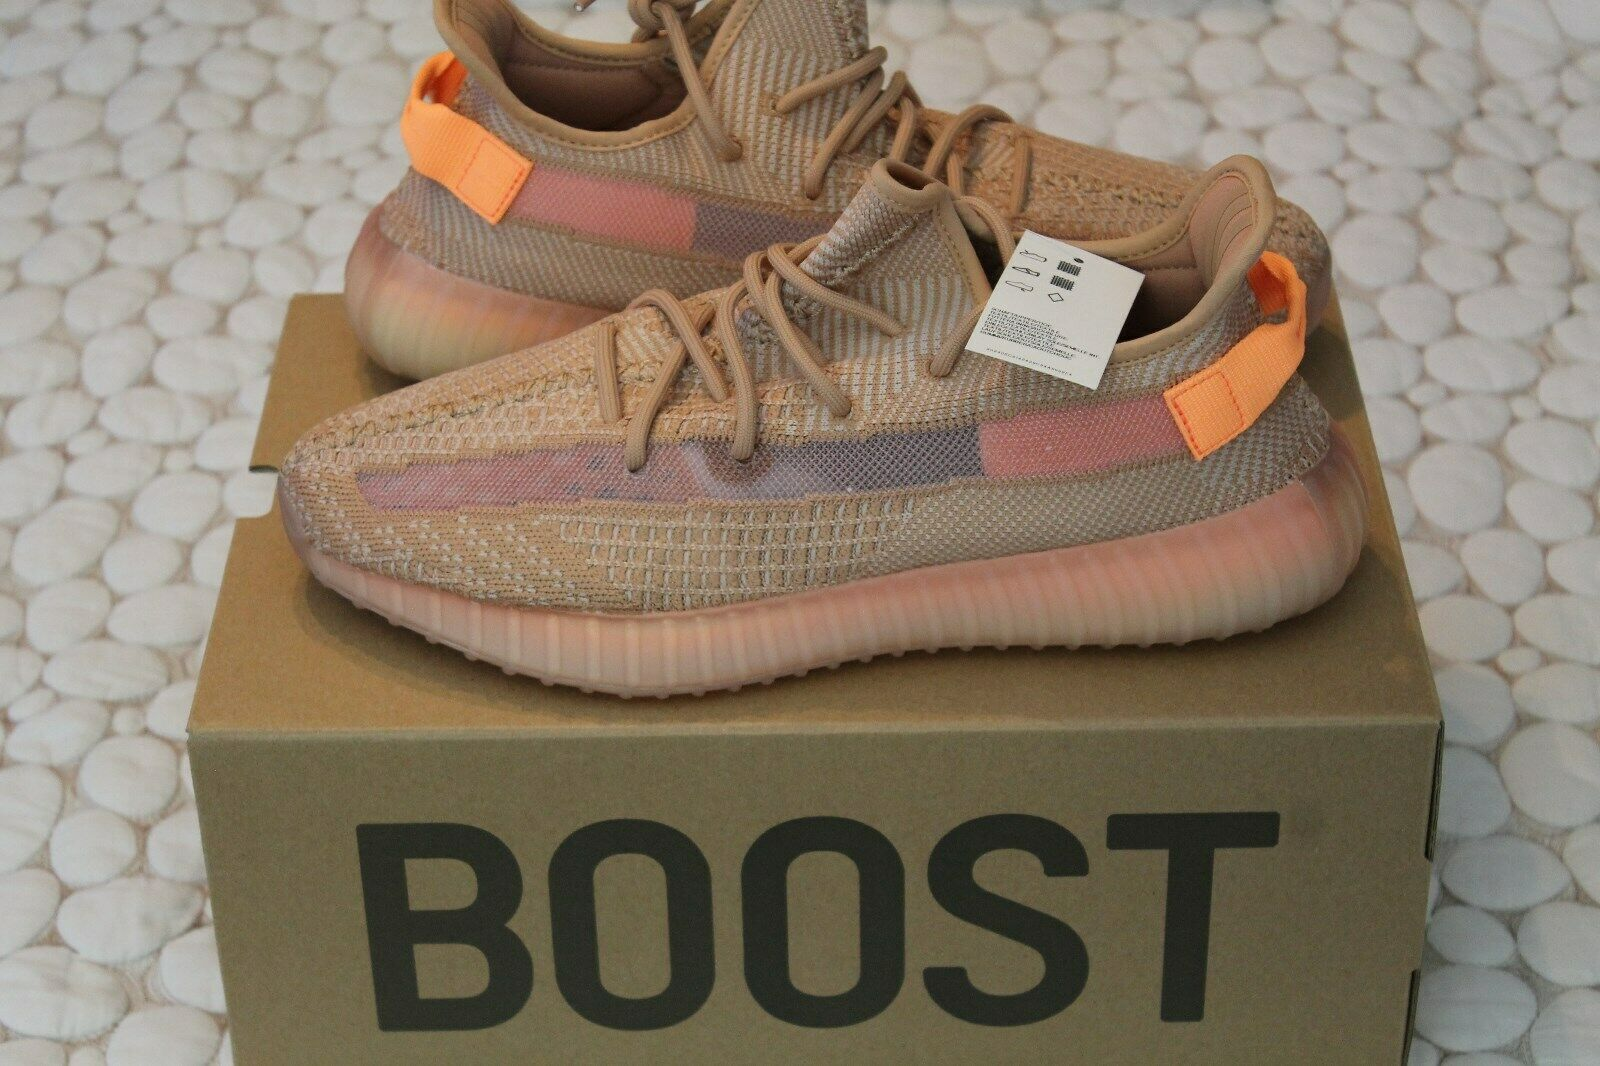 Adidas Yeezy Boost 350 V2 Clay EG7490 100% Authentic size 11